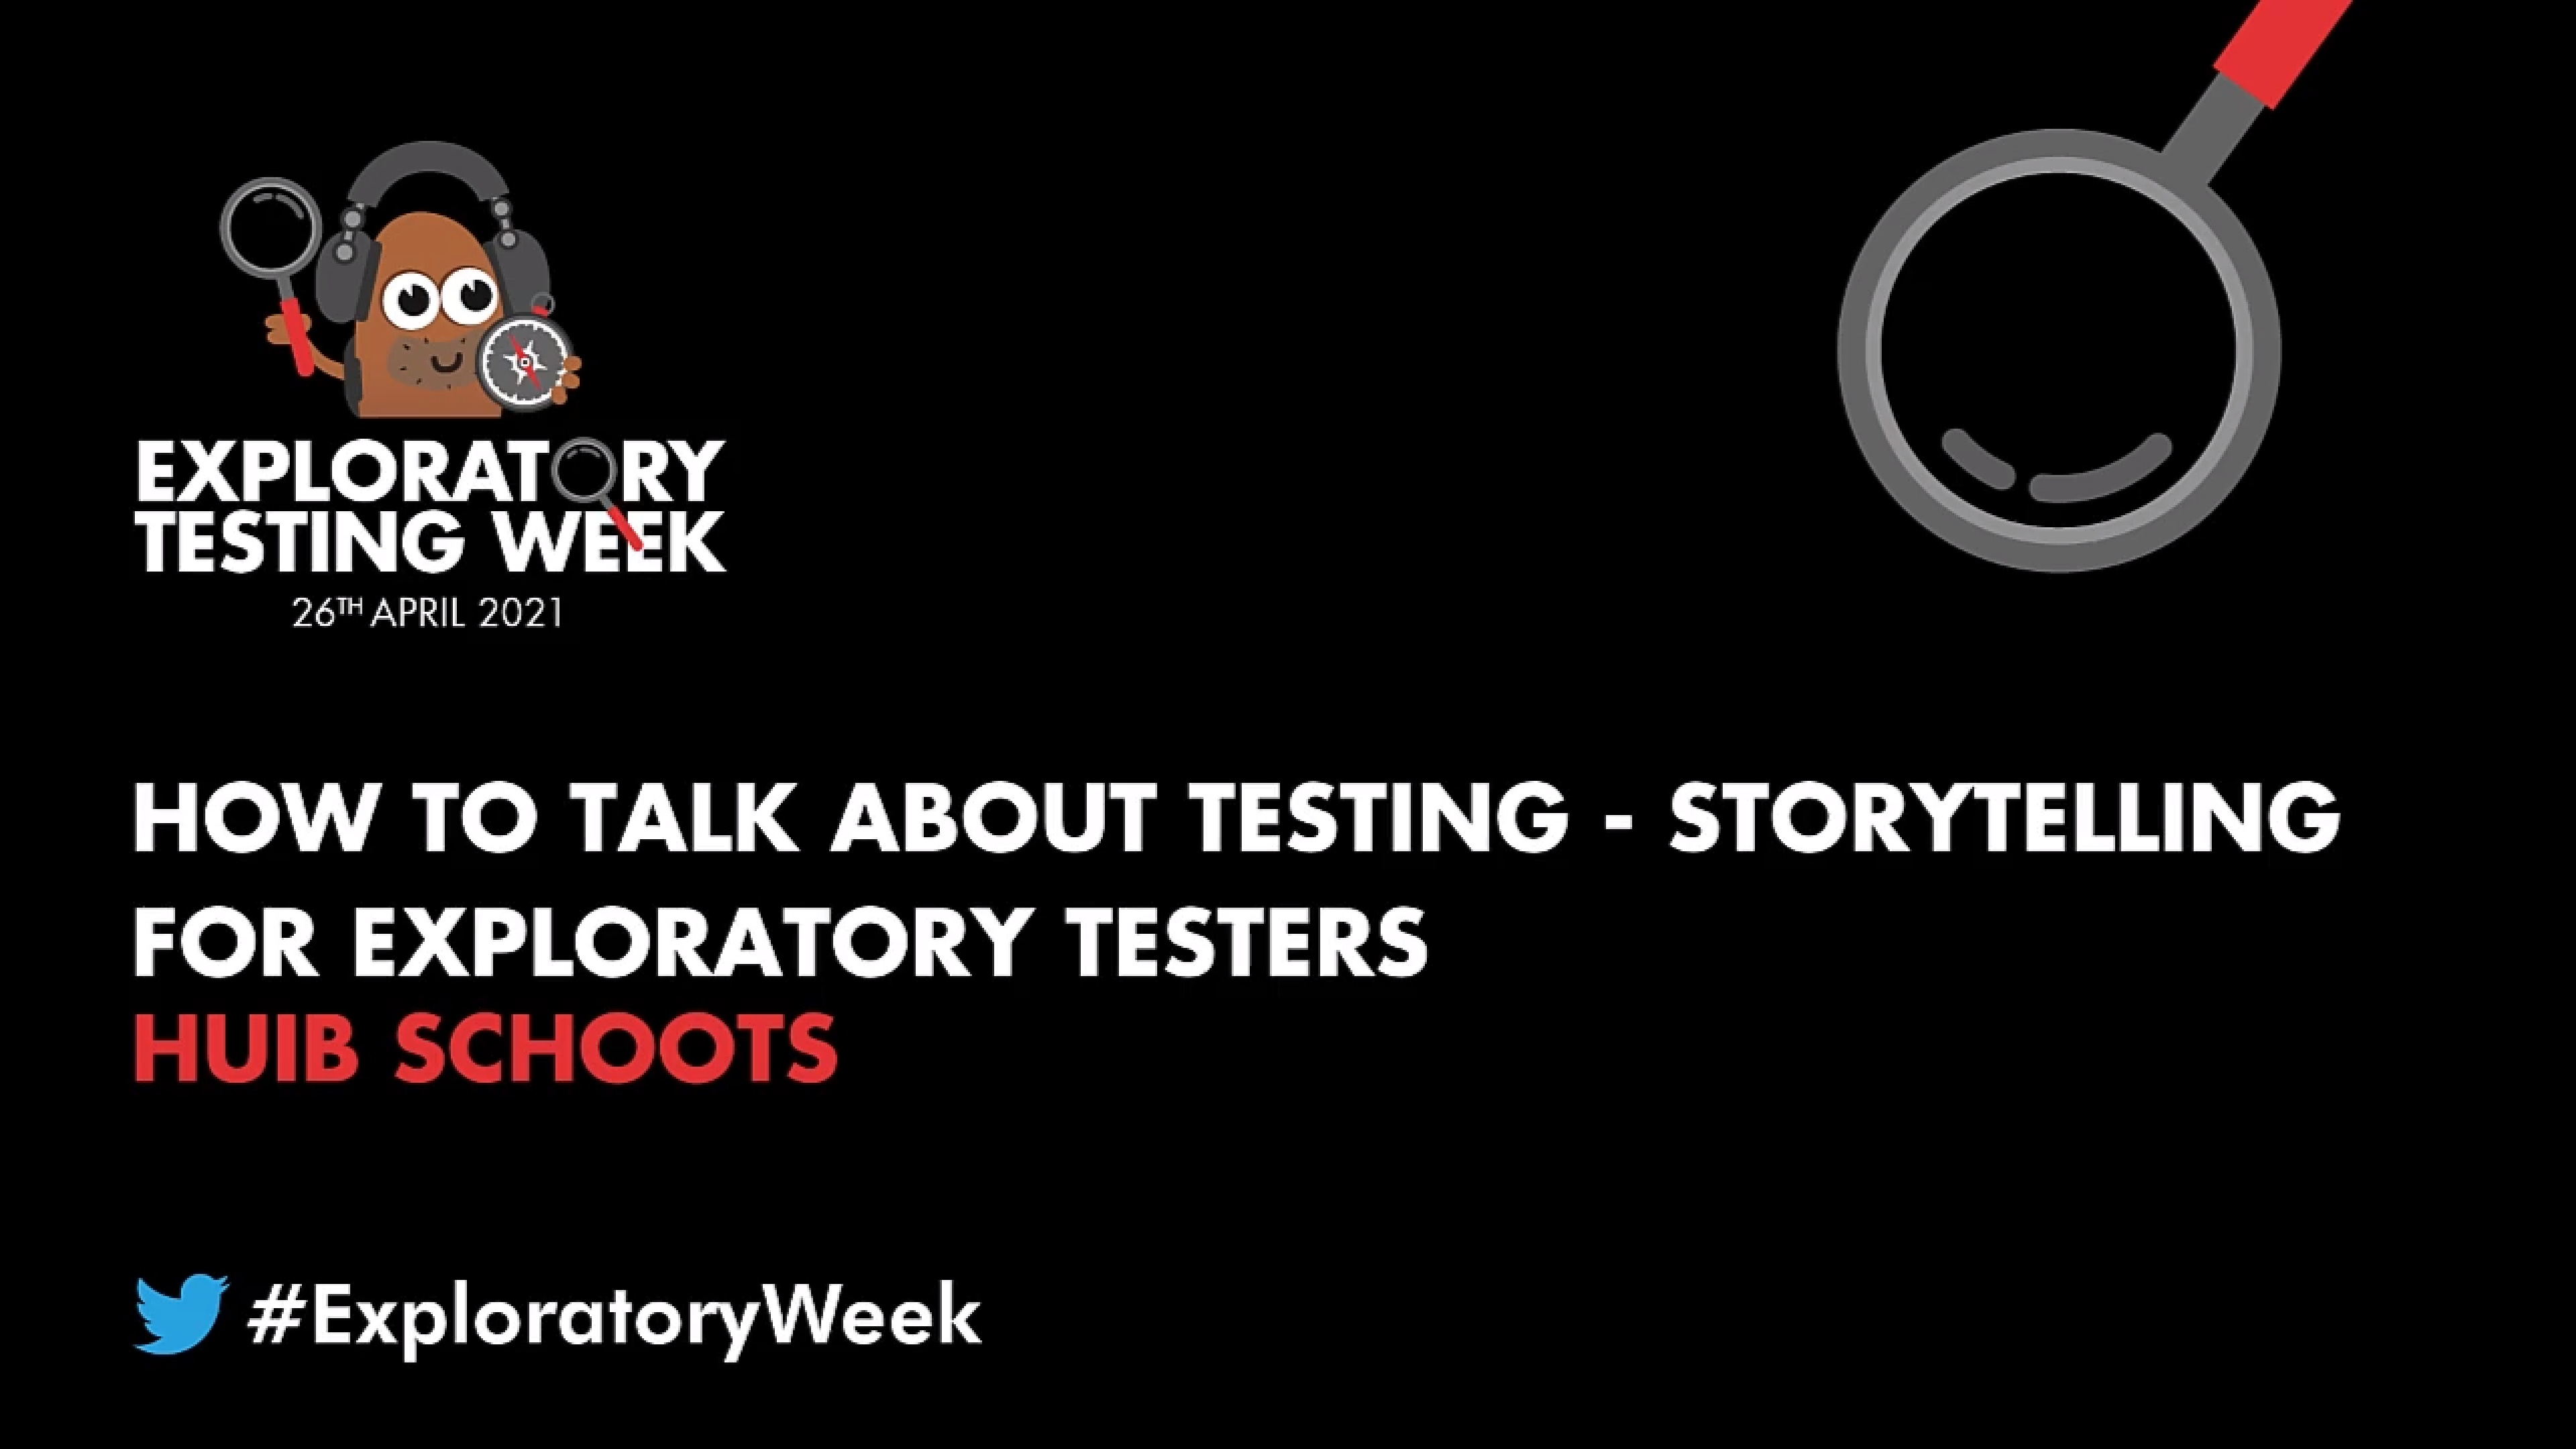 How to Talk About Testing - Storytelling for Exploratory Testers with Huib Schoots